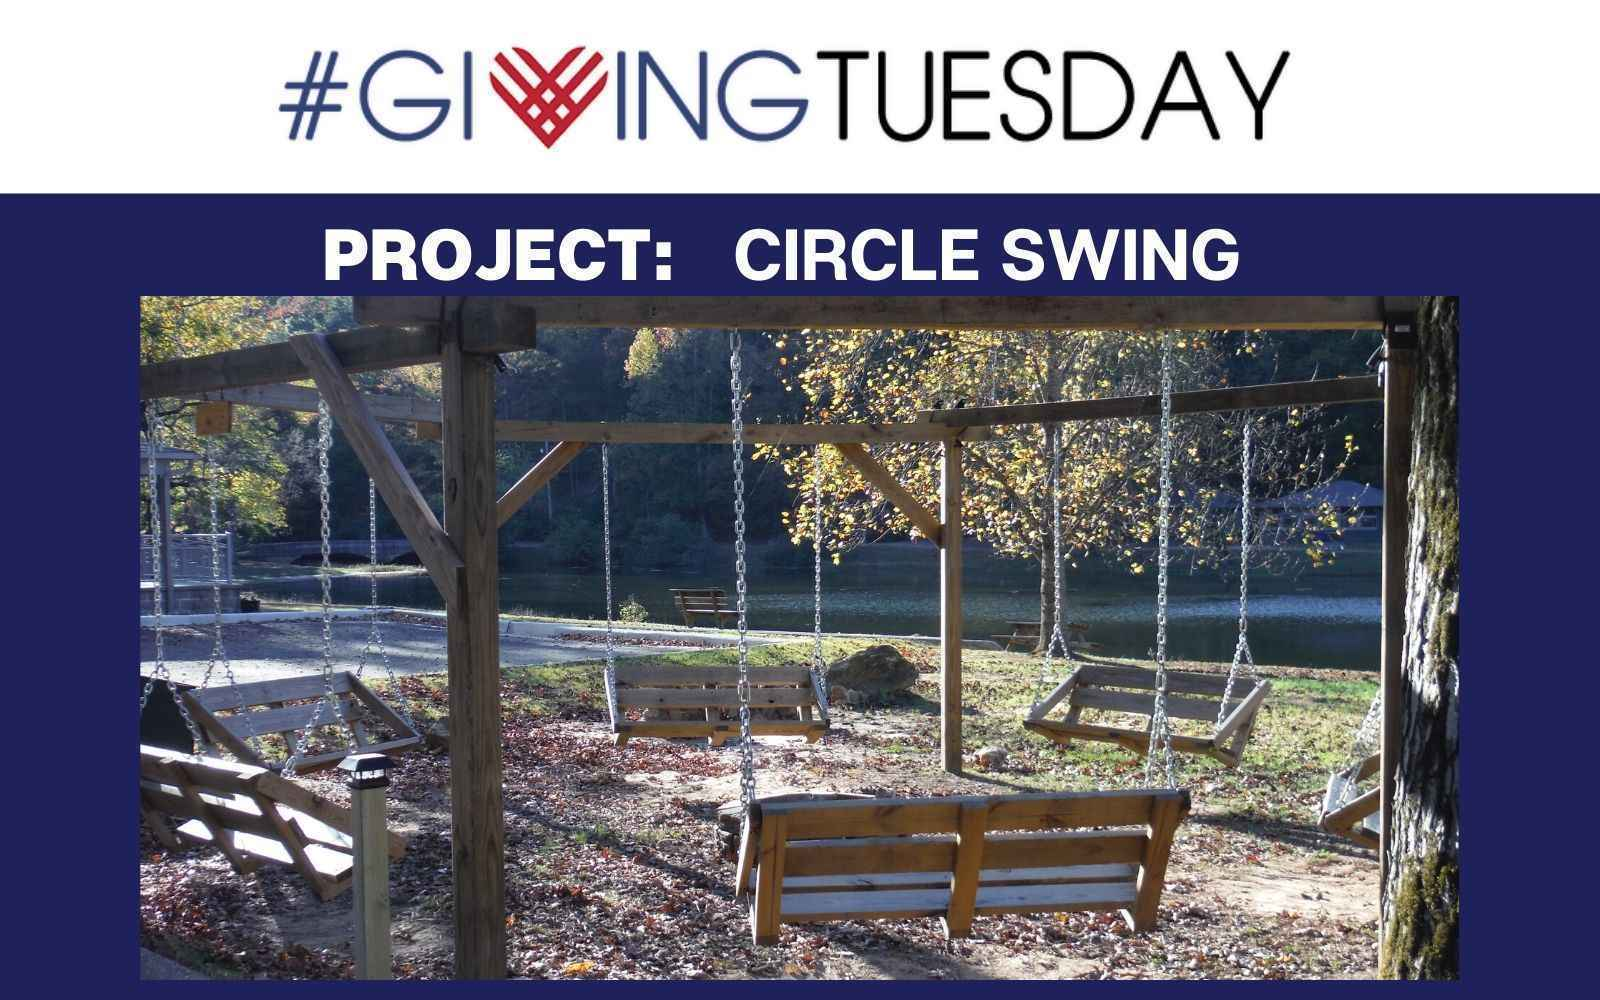 Project Circle Swing at Gilmont image